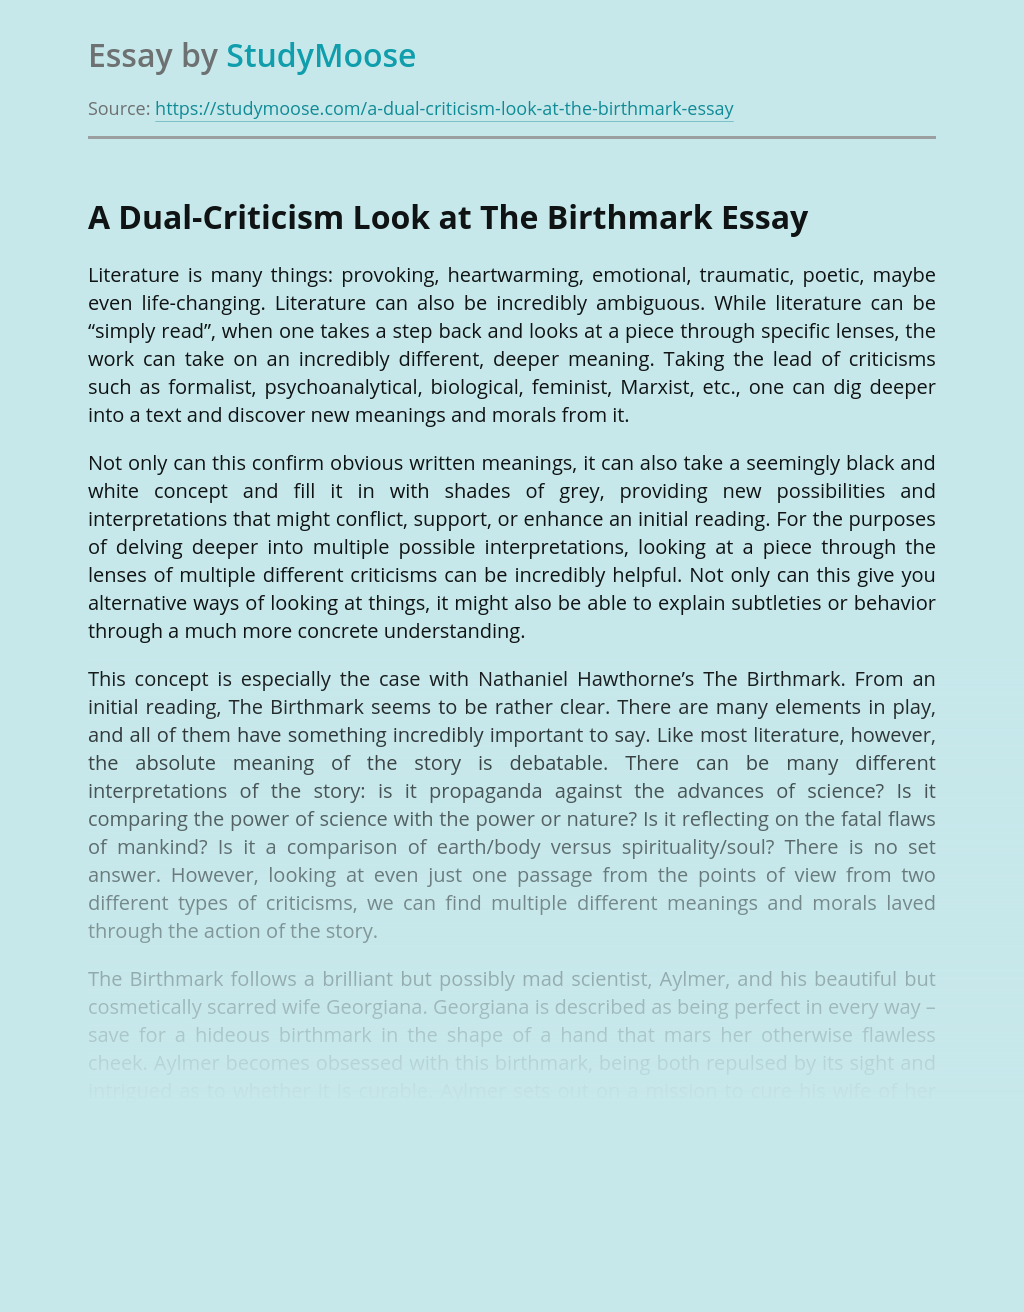 """A Dual-Criticism Look at """"The Birthmark"""" by Nathaniel Hawthorne"""